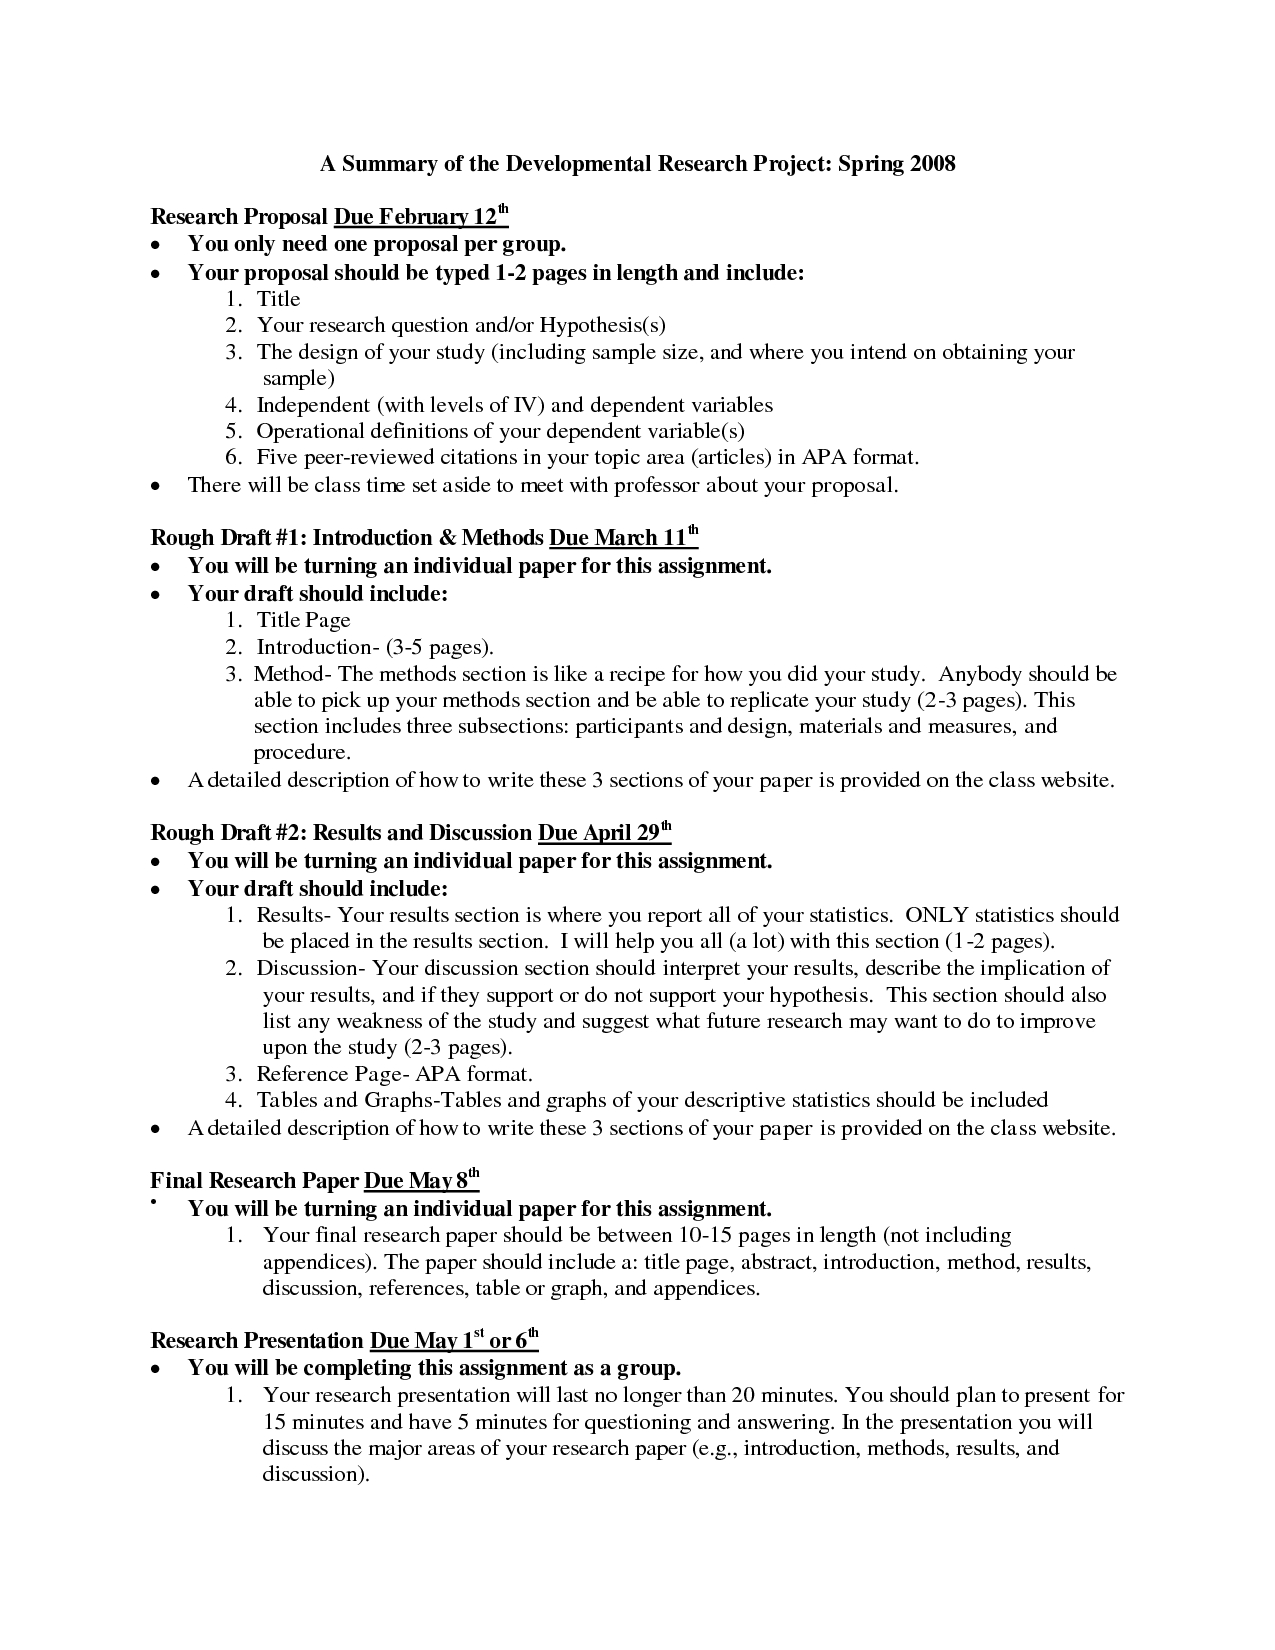 012 Good Research Paper Topic Psychology Undergraduate Resume Unique Sample Singular Topics About Sports For College English Biology High School Students